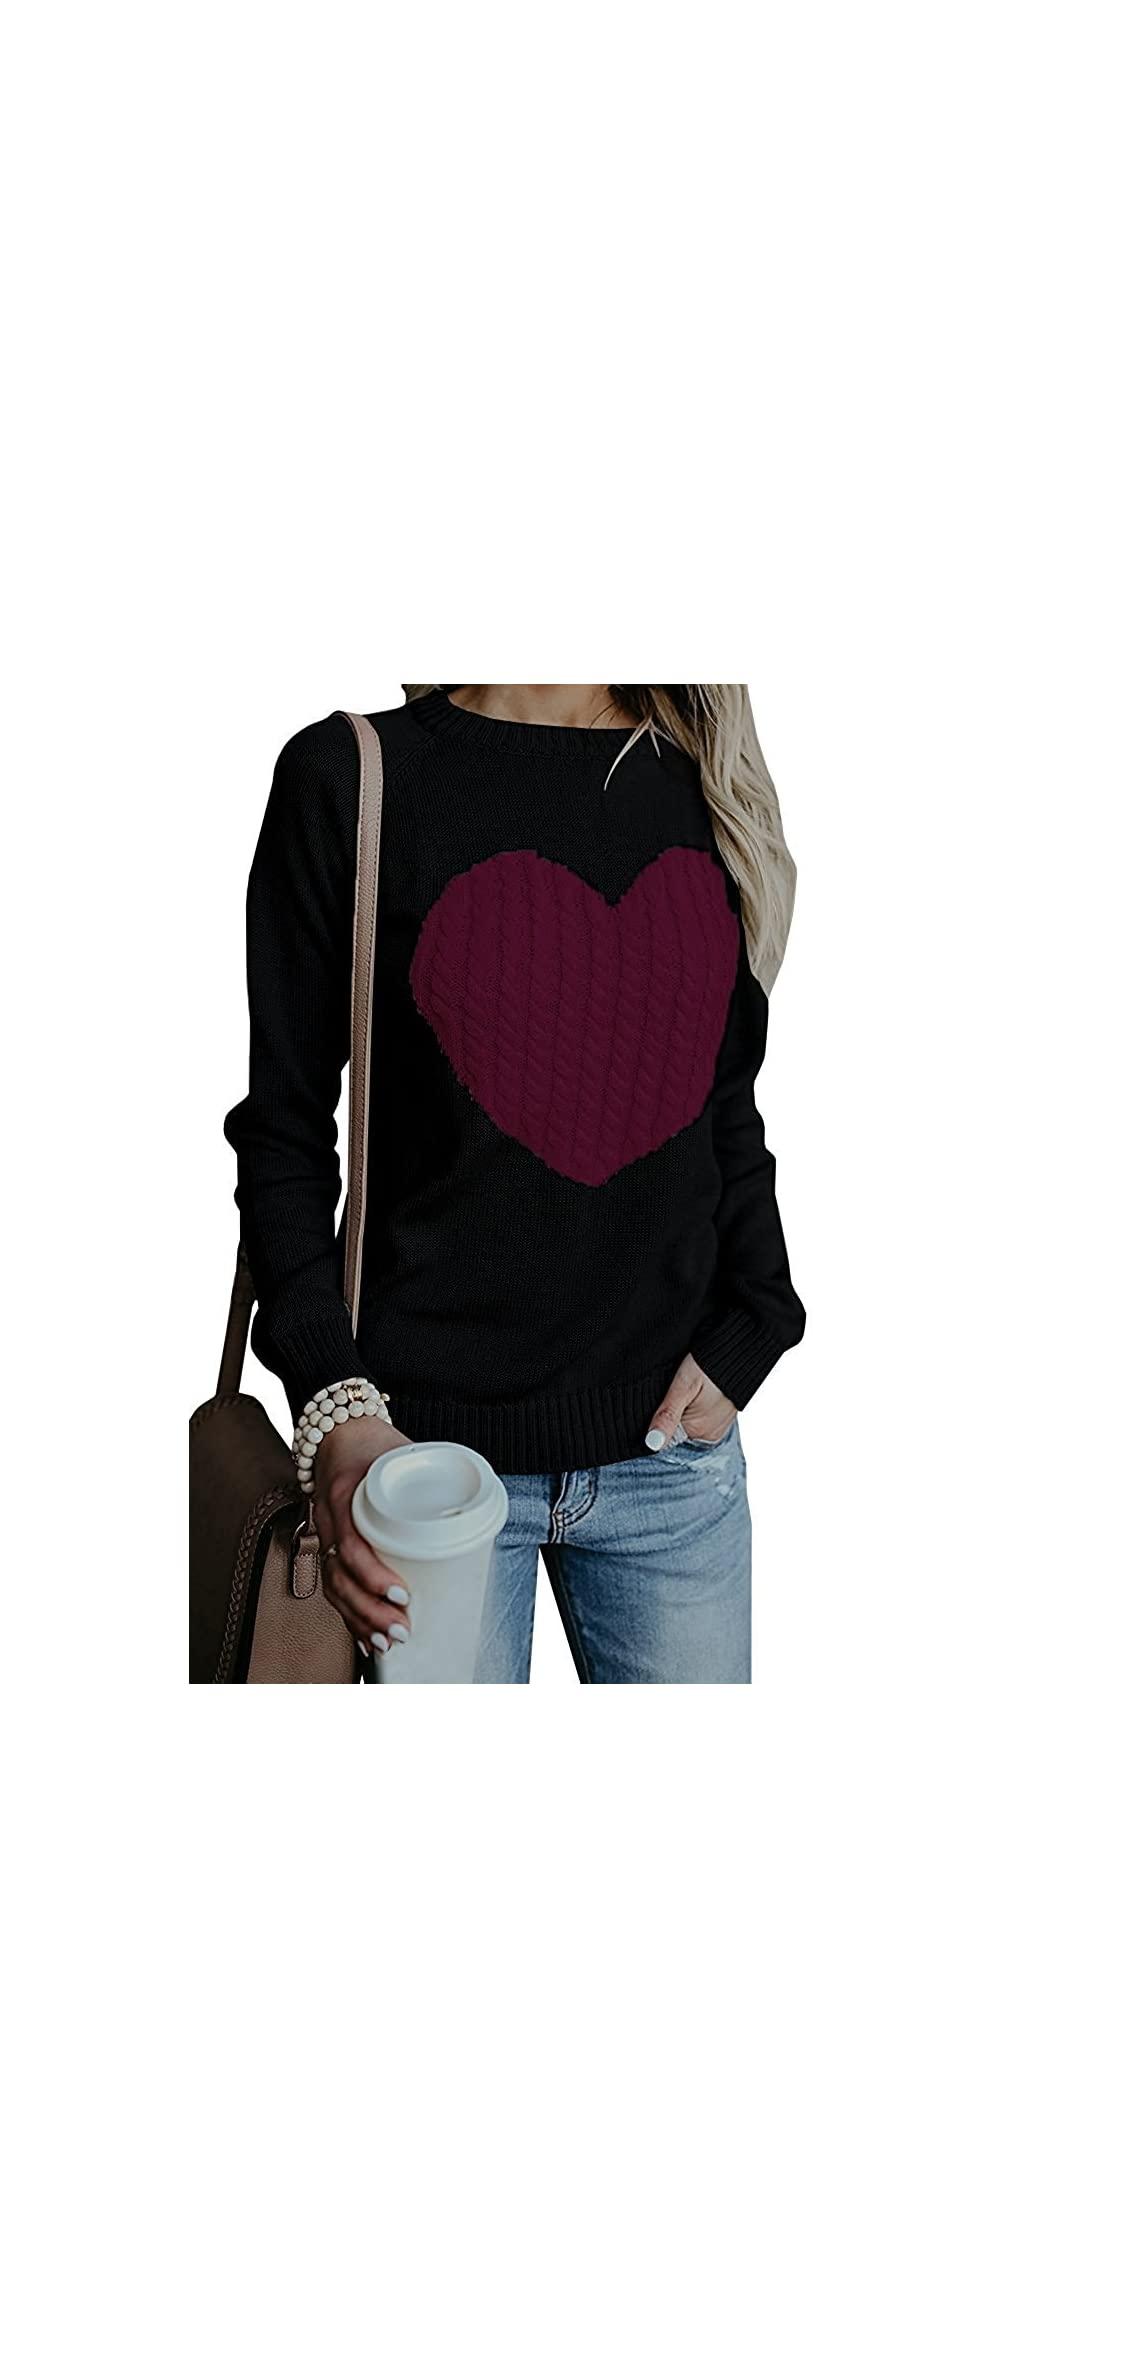 Women's Cute Heart Cable Chunky Knit Pullover Sweater